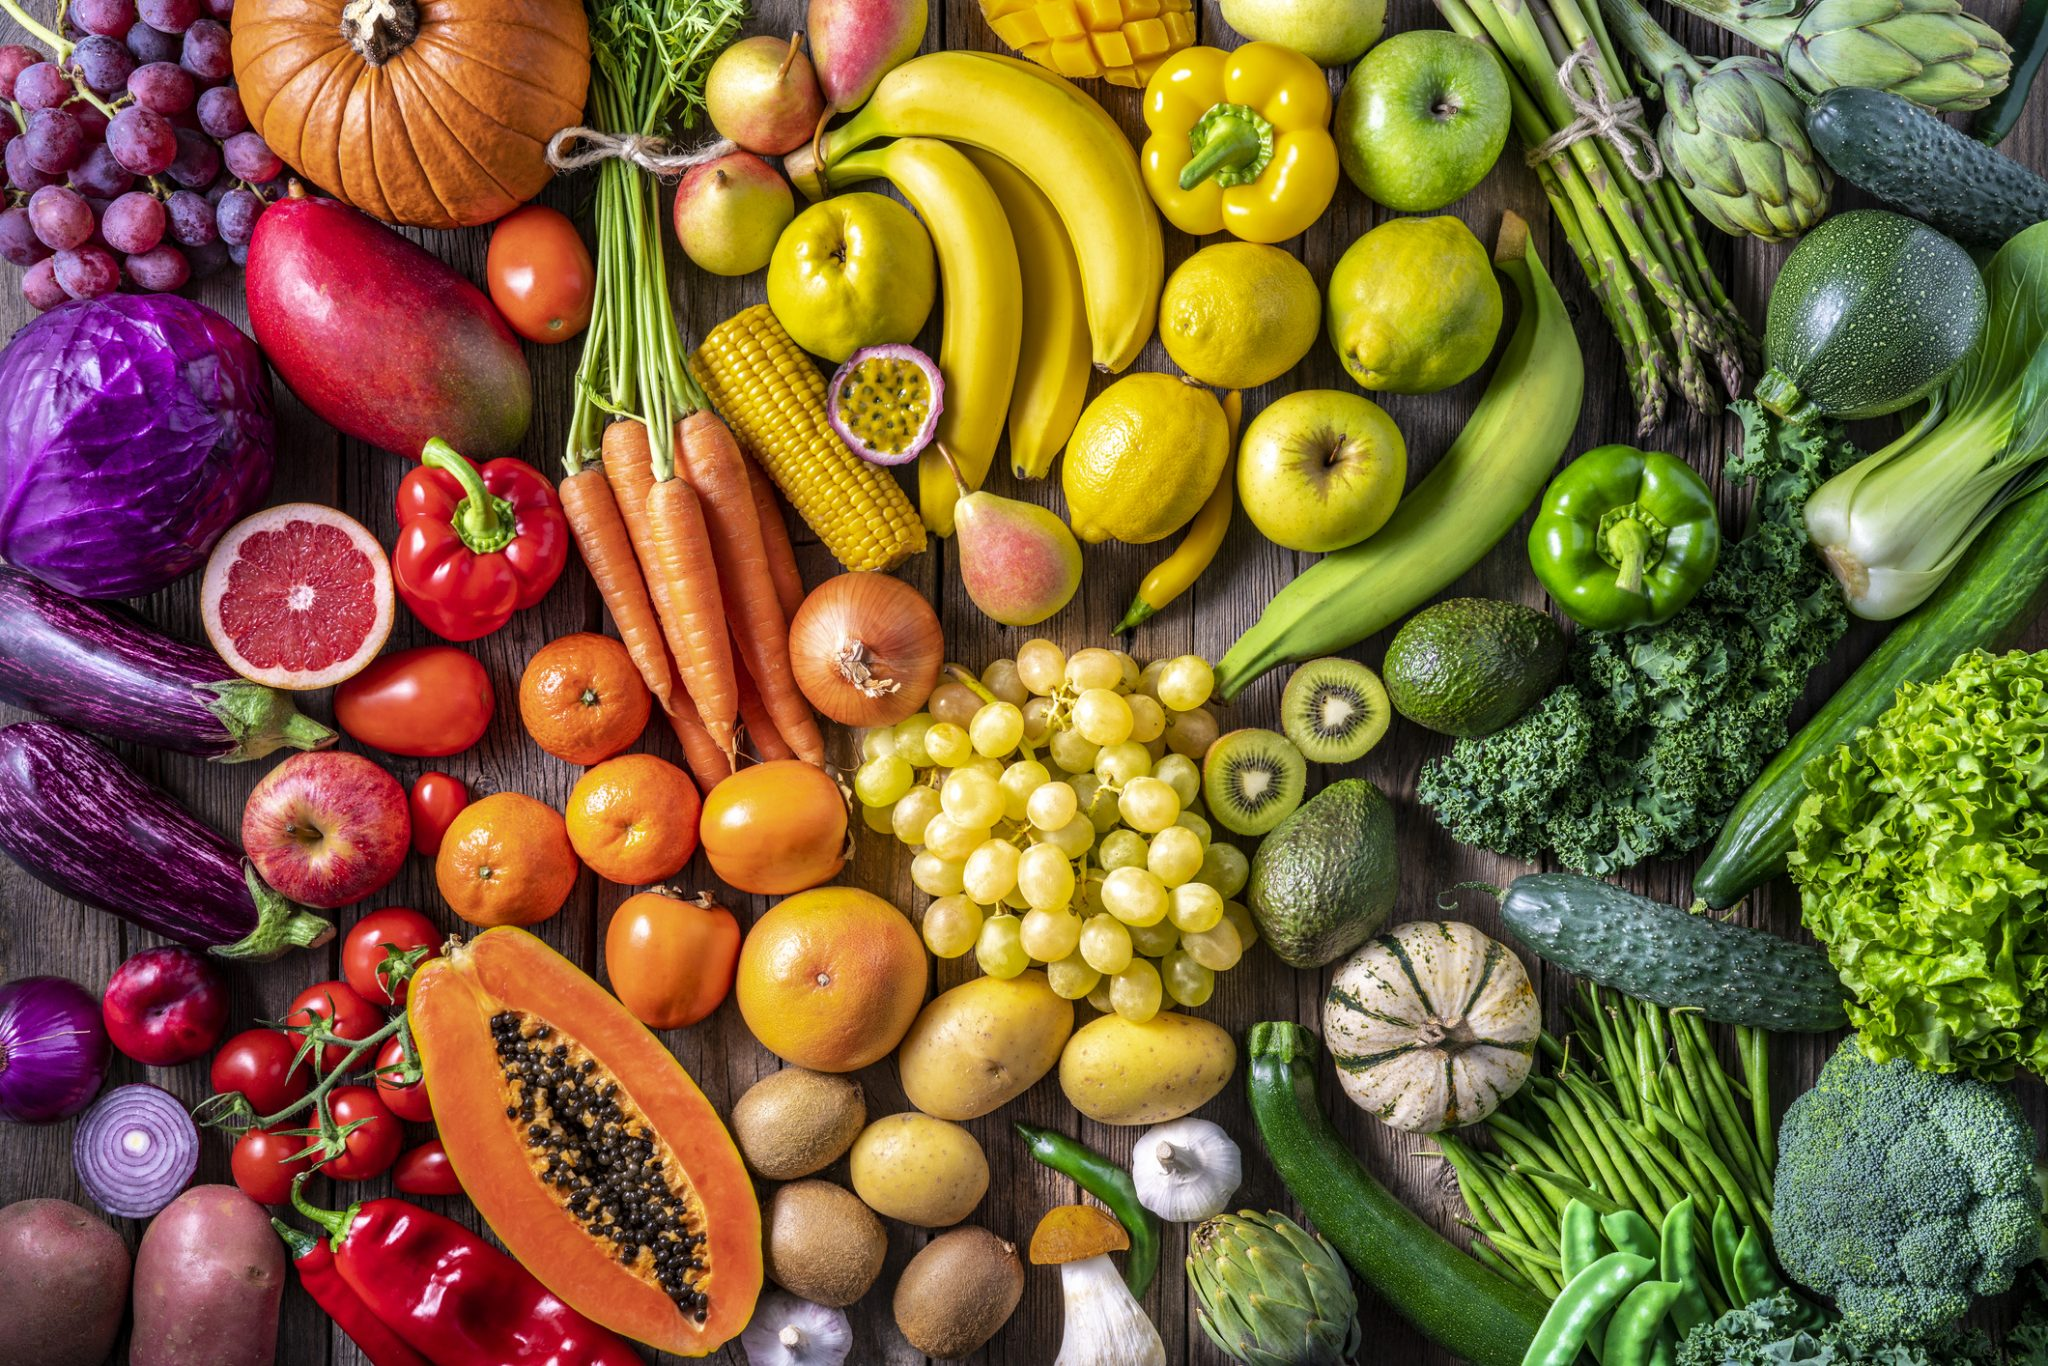 Colorful vegetables and fruits vegan food in rainbow colors